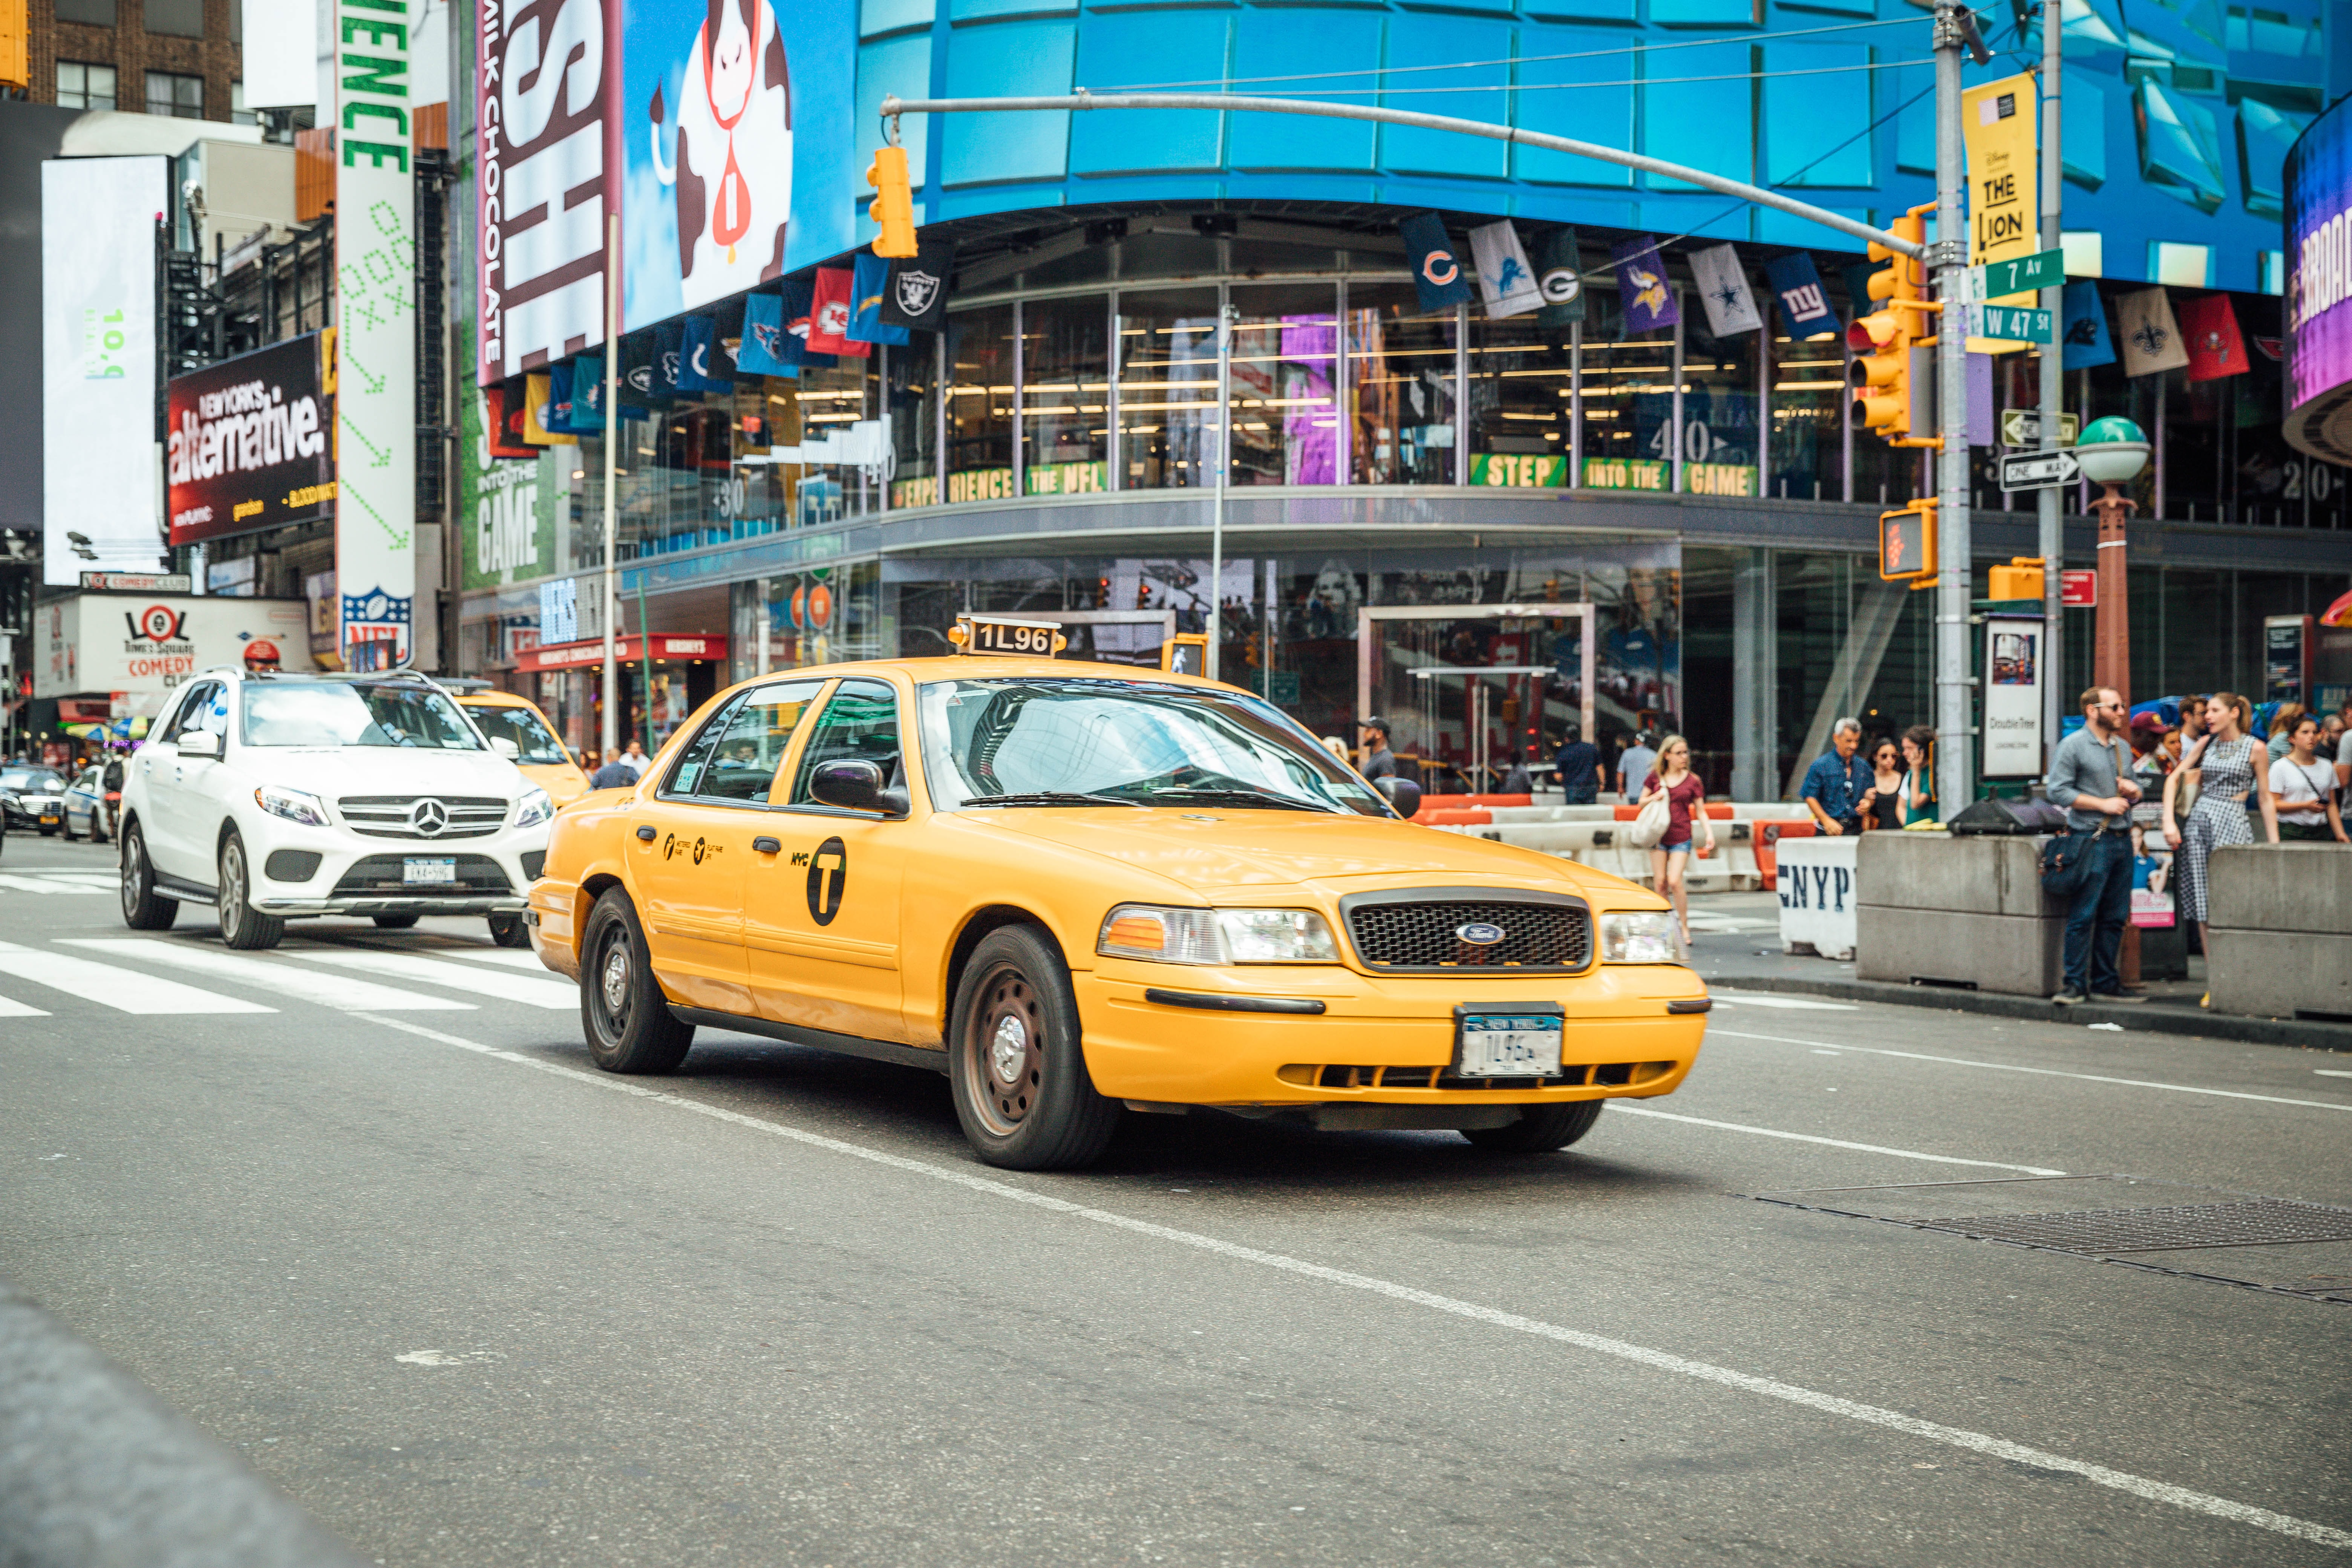 yellow taxi cab near white car